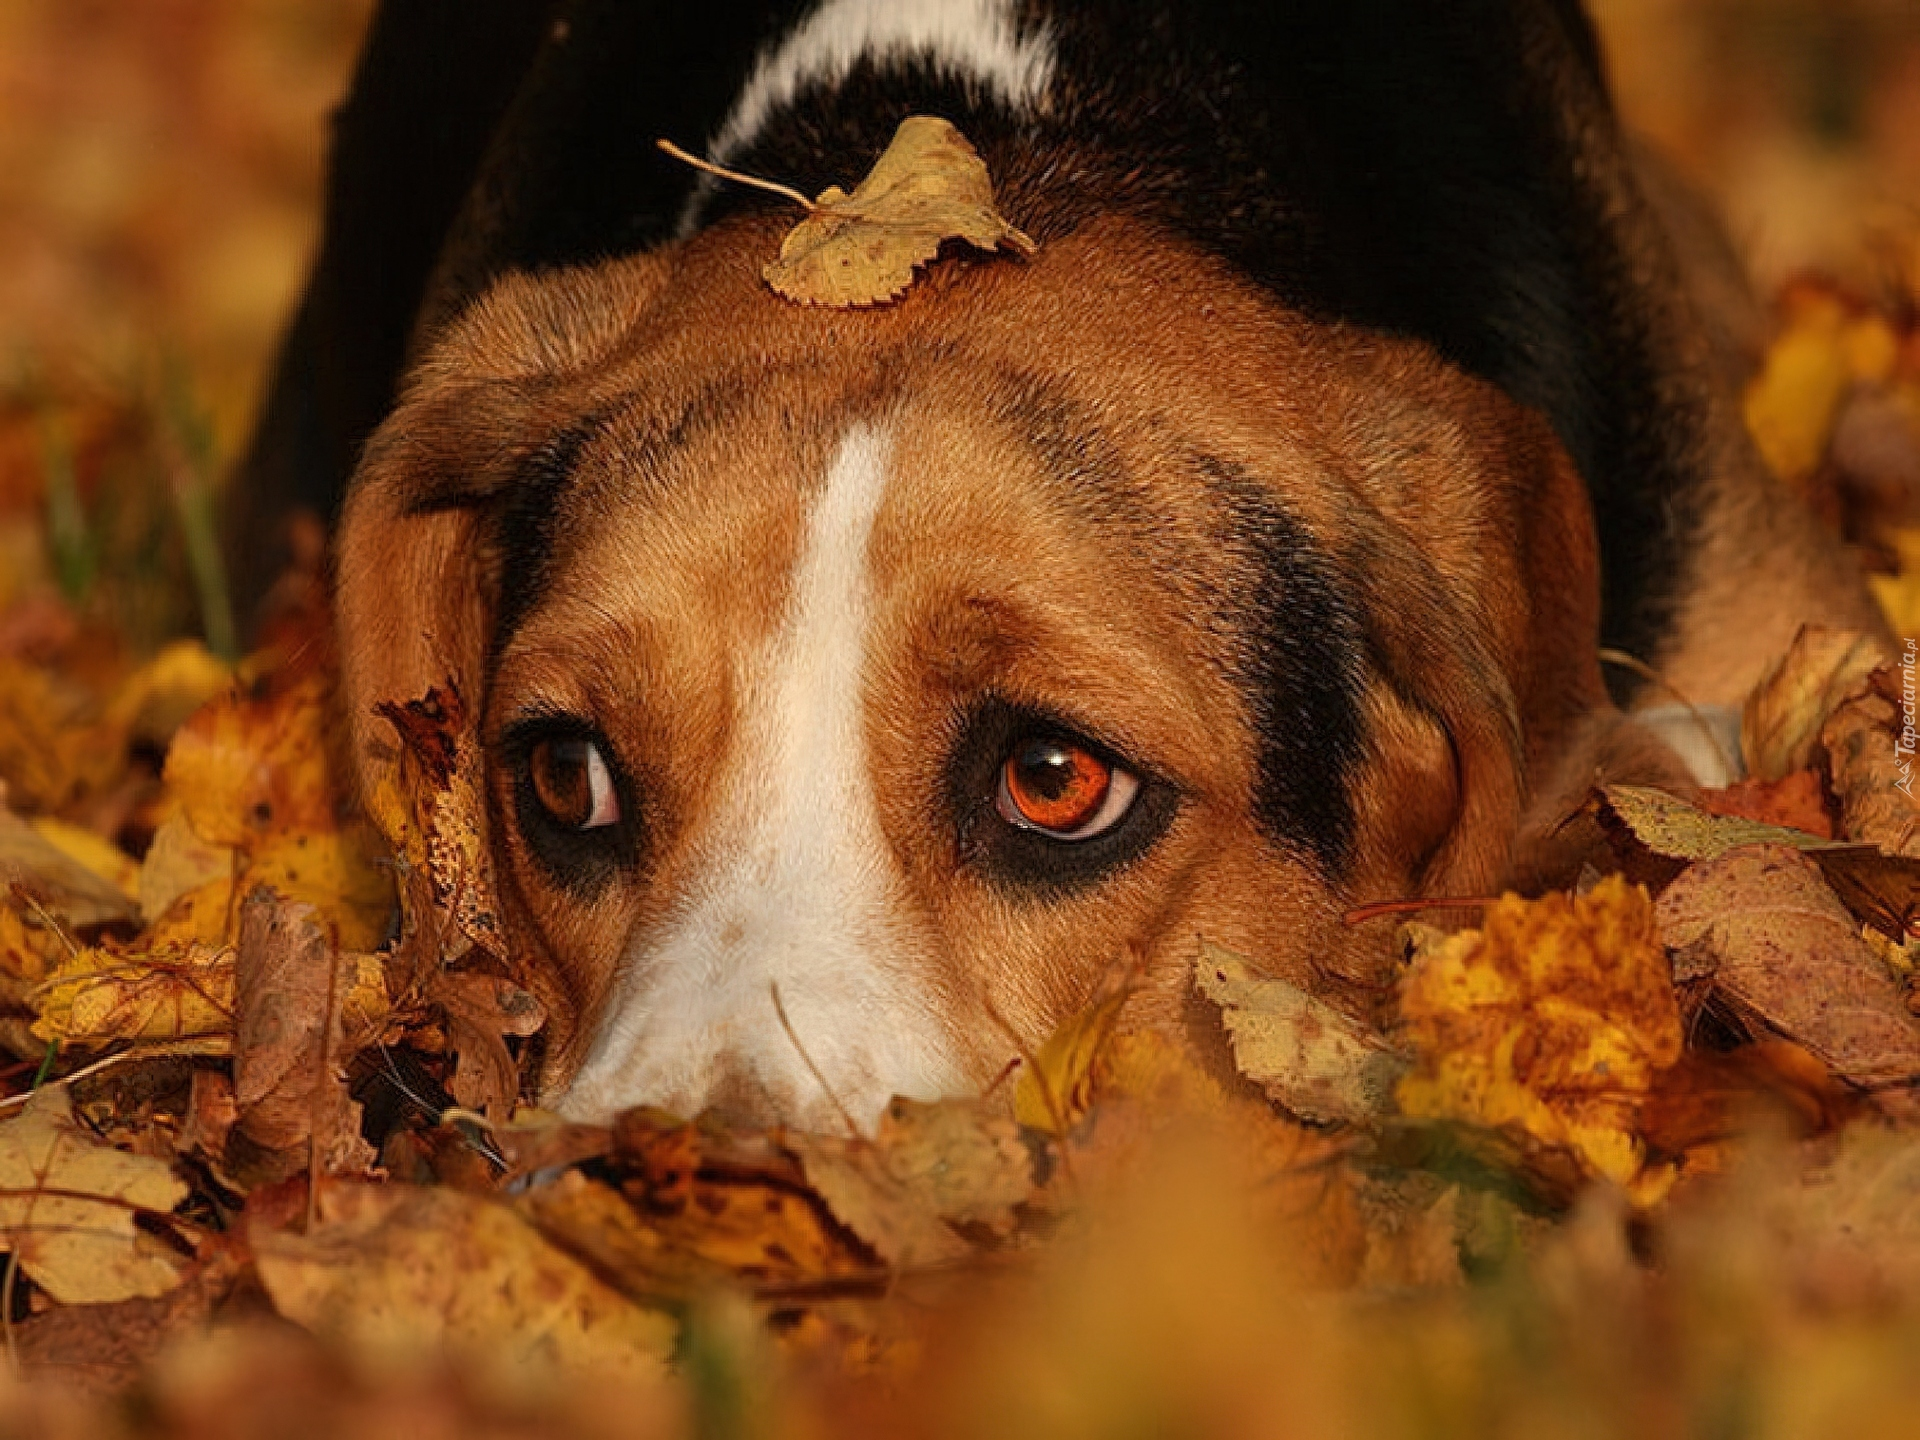 Cute Wallpapers 1080p Beagles Pies Jesienne Liście Beagle